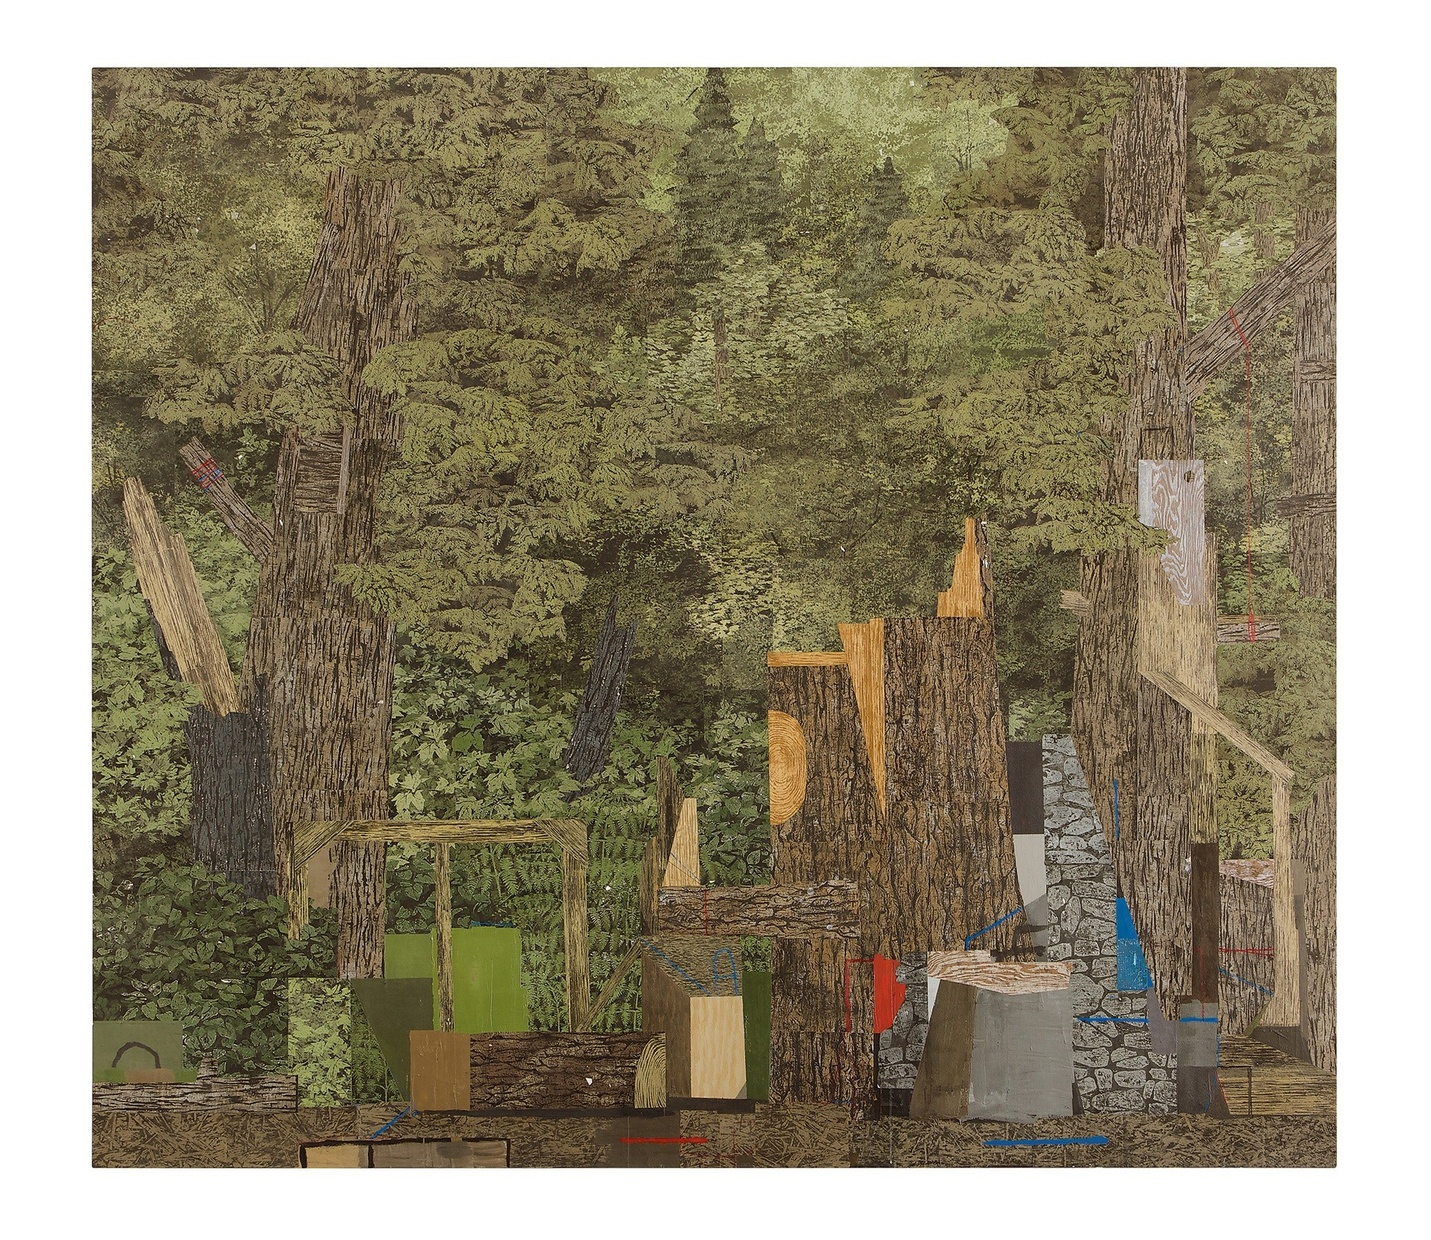 An abstract painting of a forest with chopped tree trunks near the front and stone-like and metal-like materials scattered around the damaged trees.